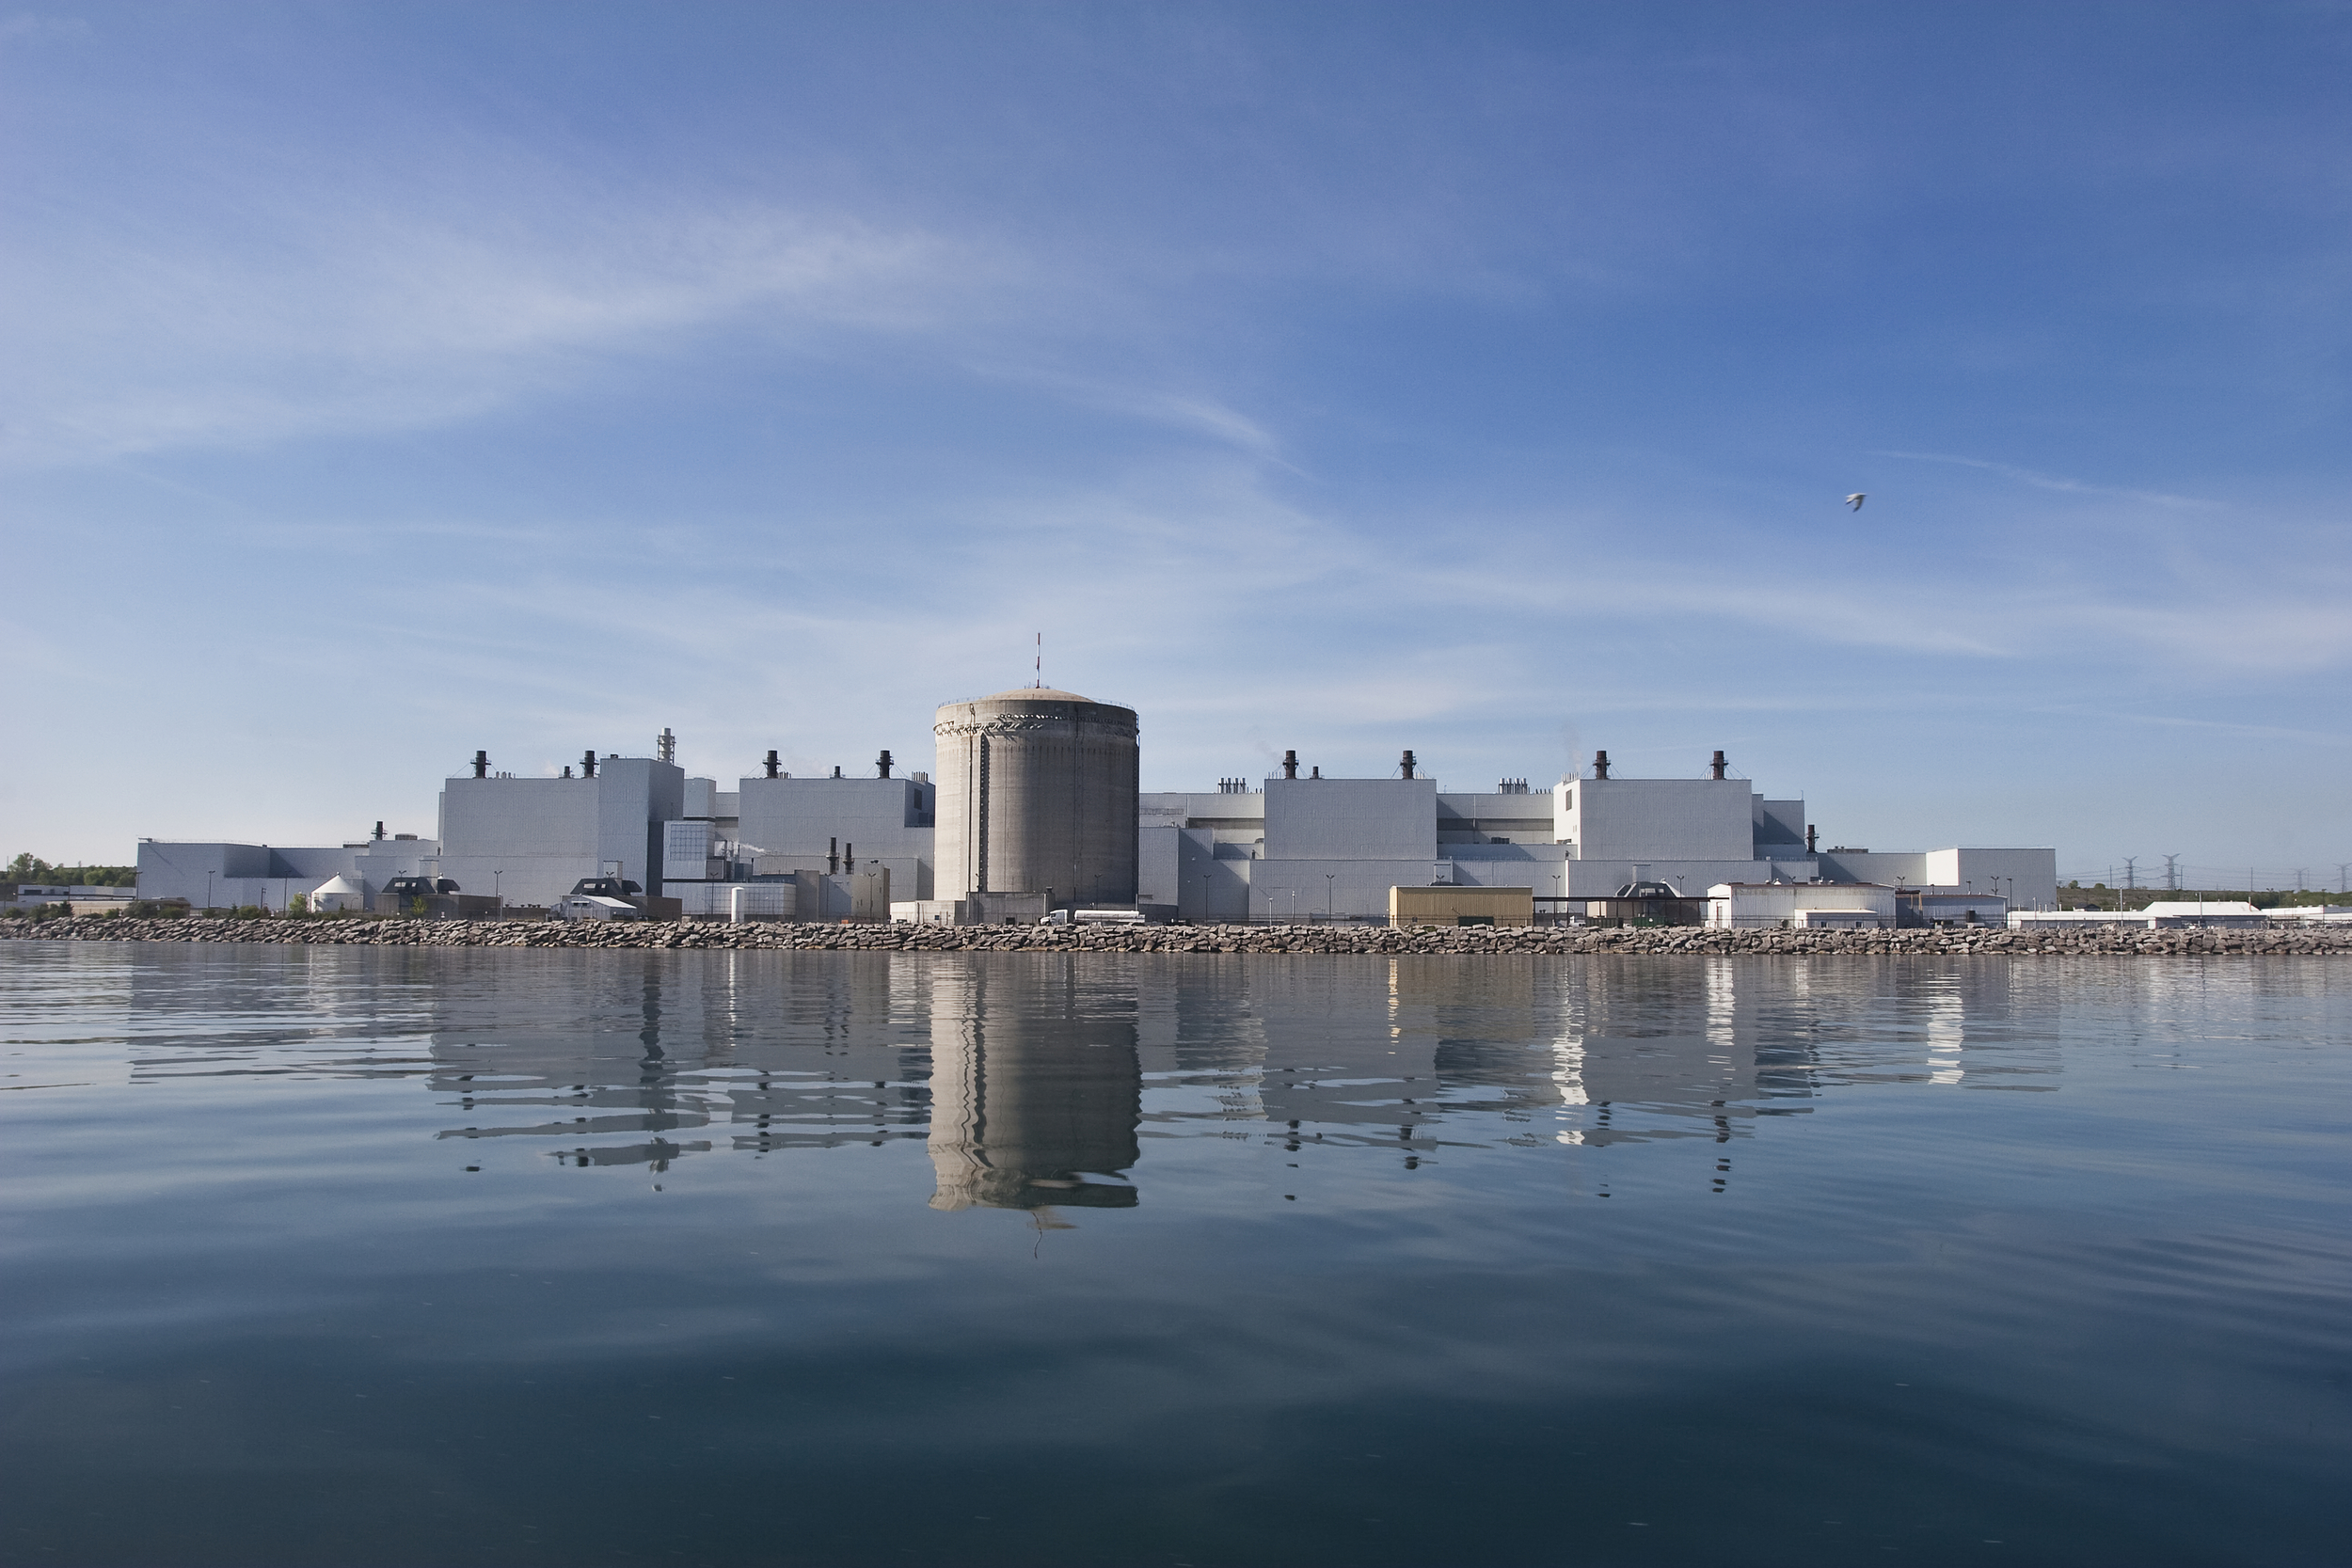 The existing Darlington Nuclear Generating Station. Image courtesy Tanya Ross & Greenpeace.